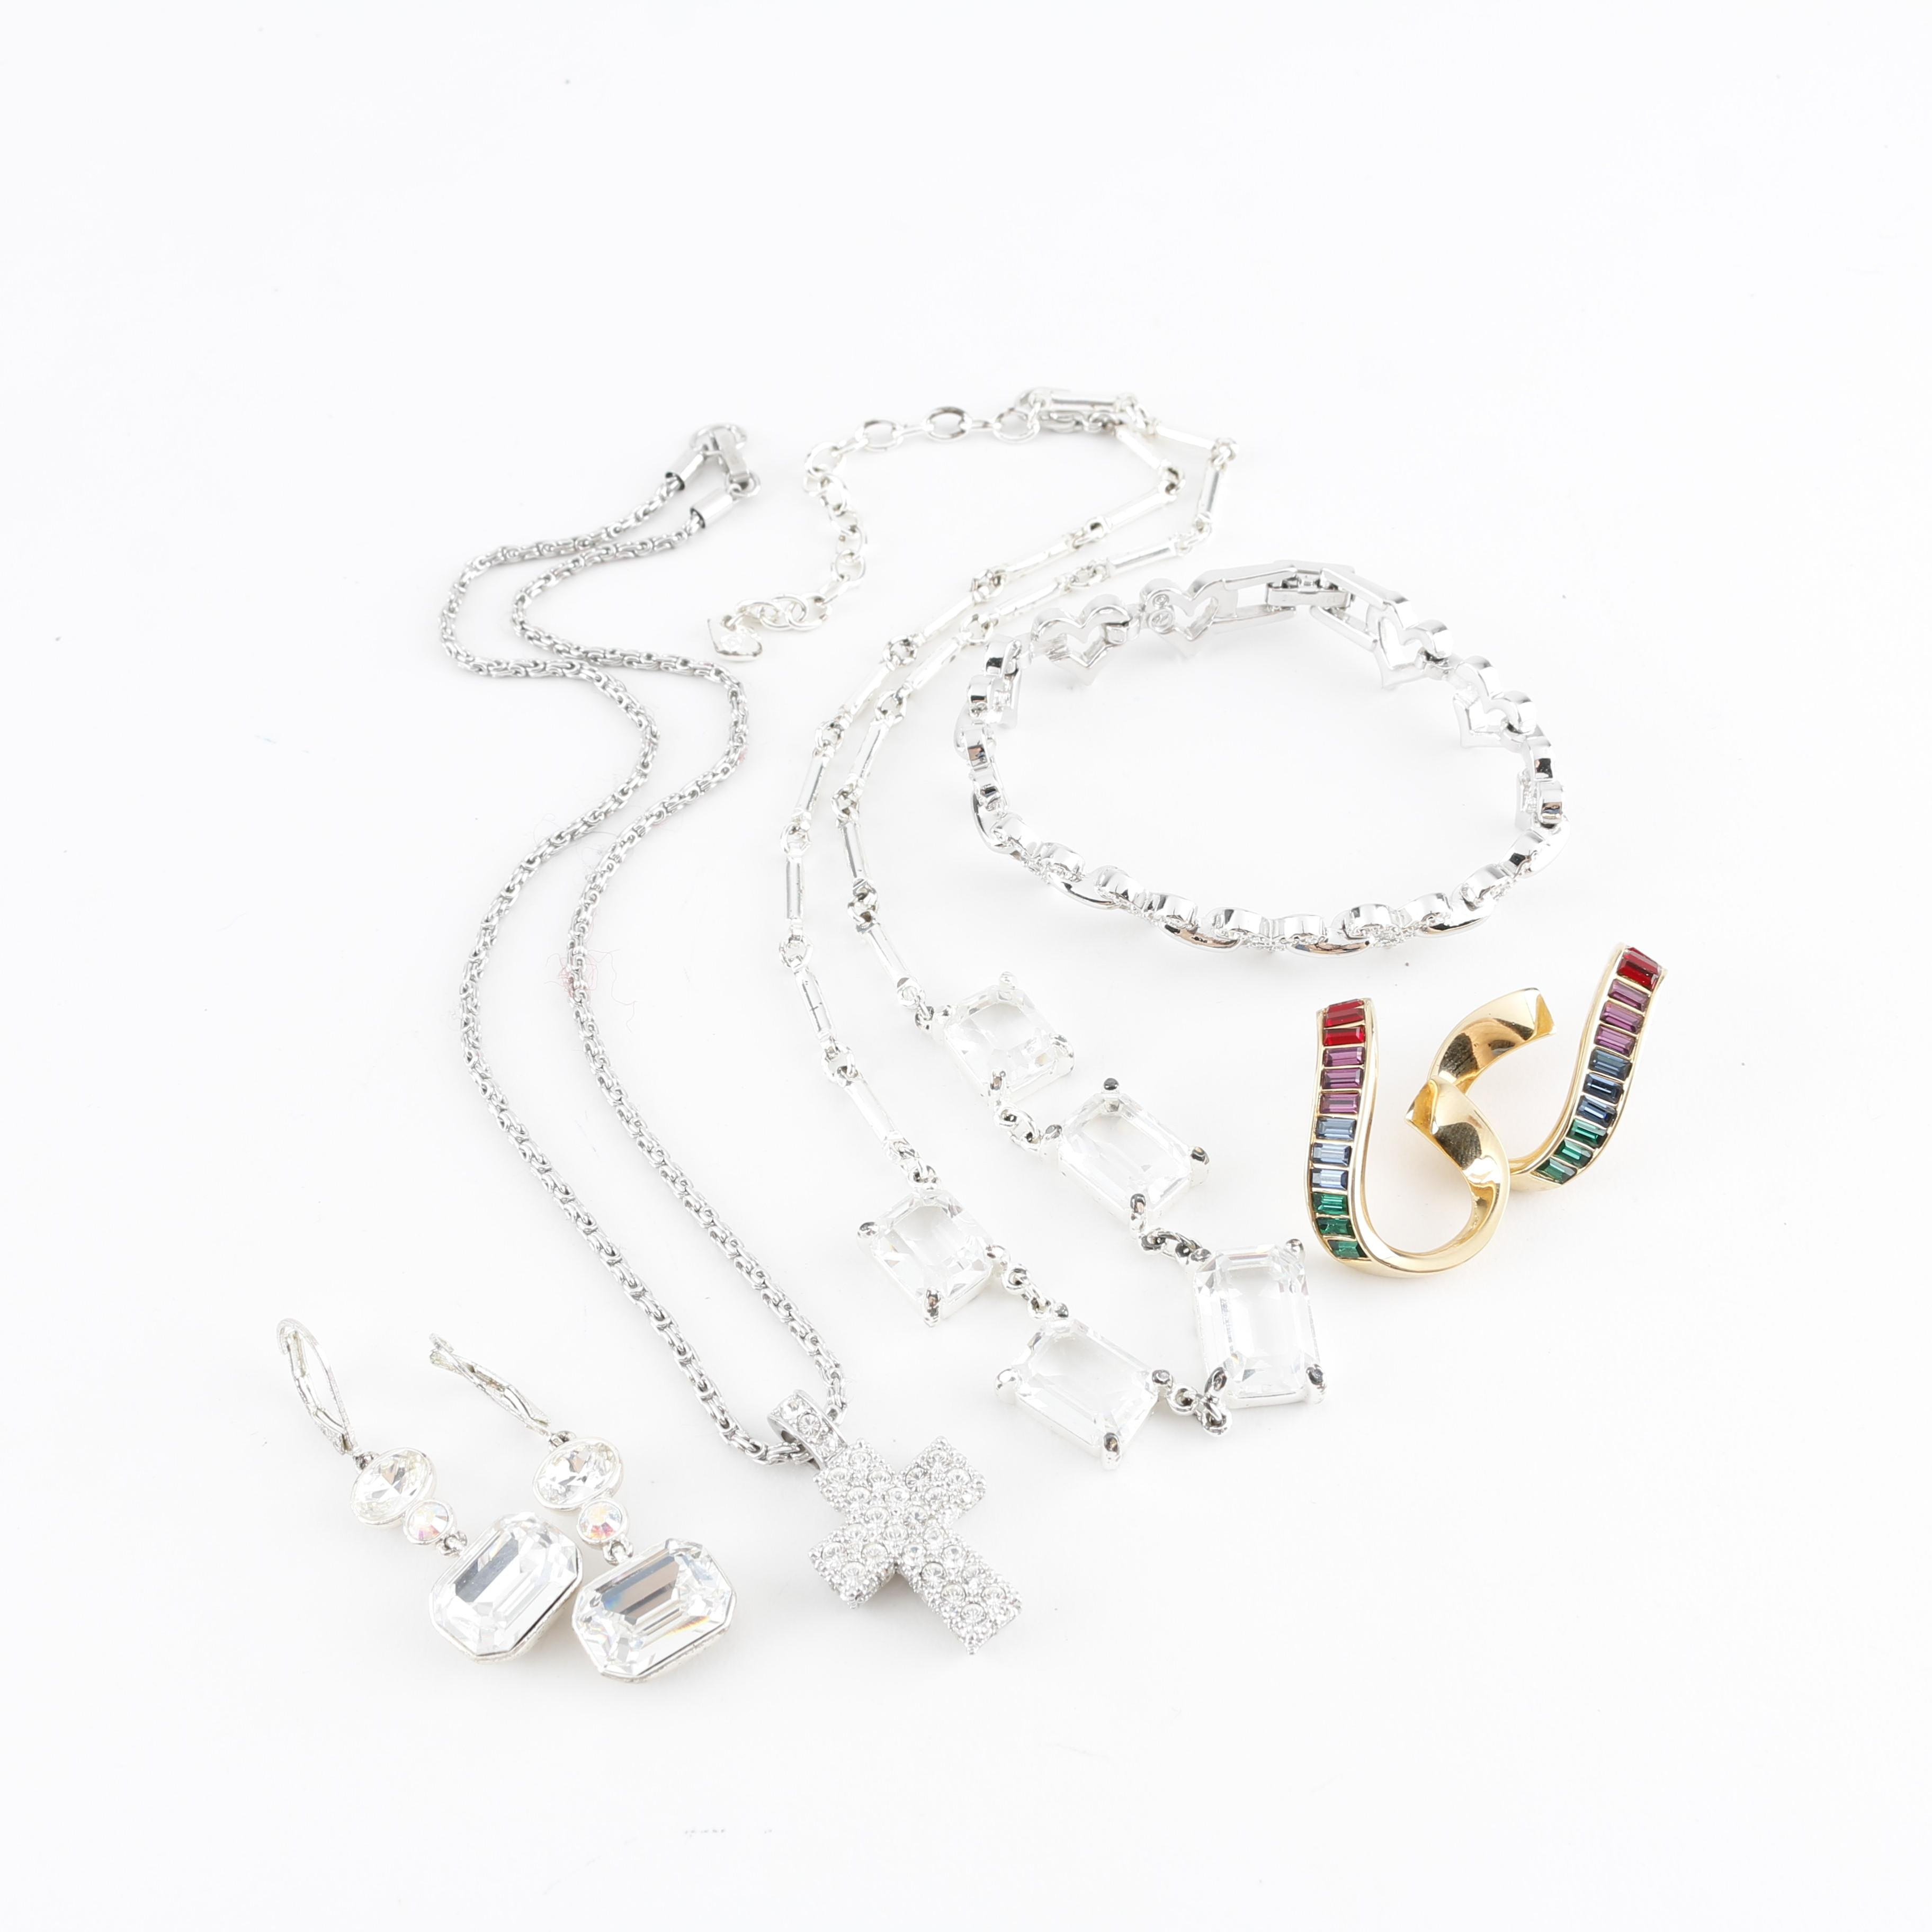 Grouping of Swarovski Jewelry and Pair of Givenchy Earrings